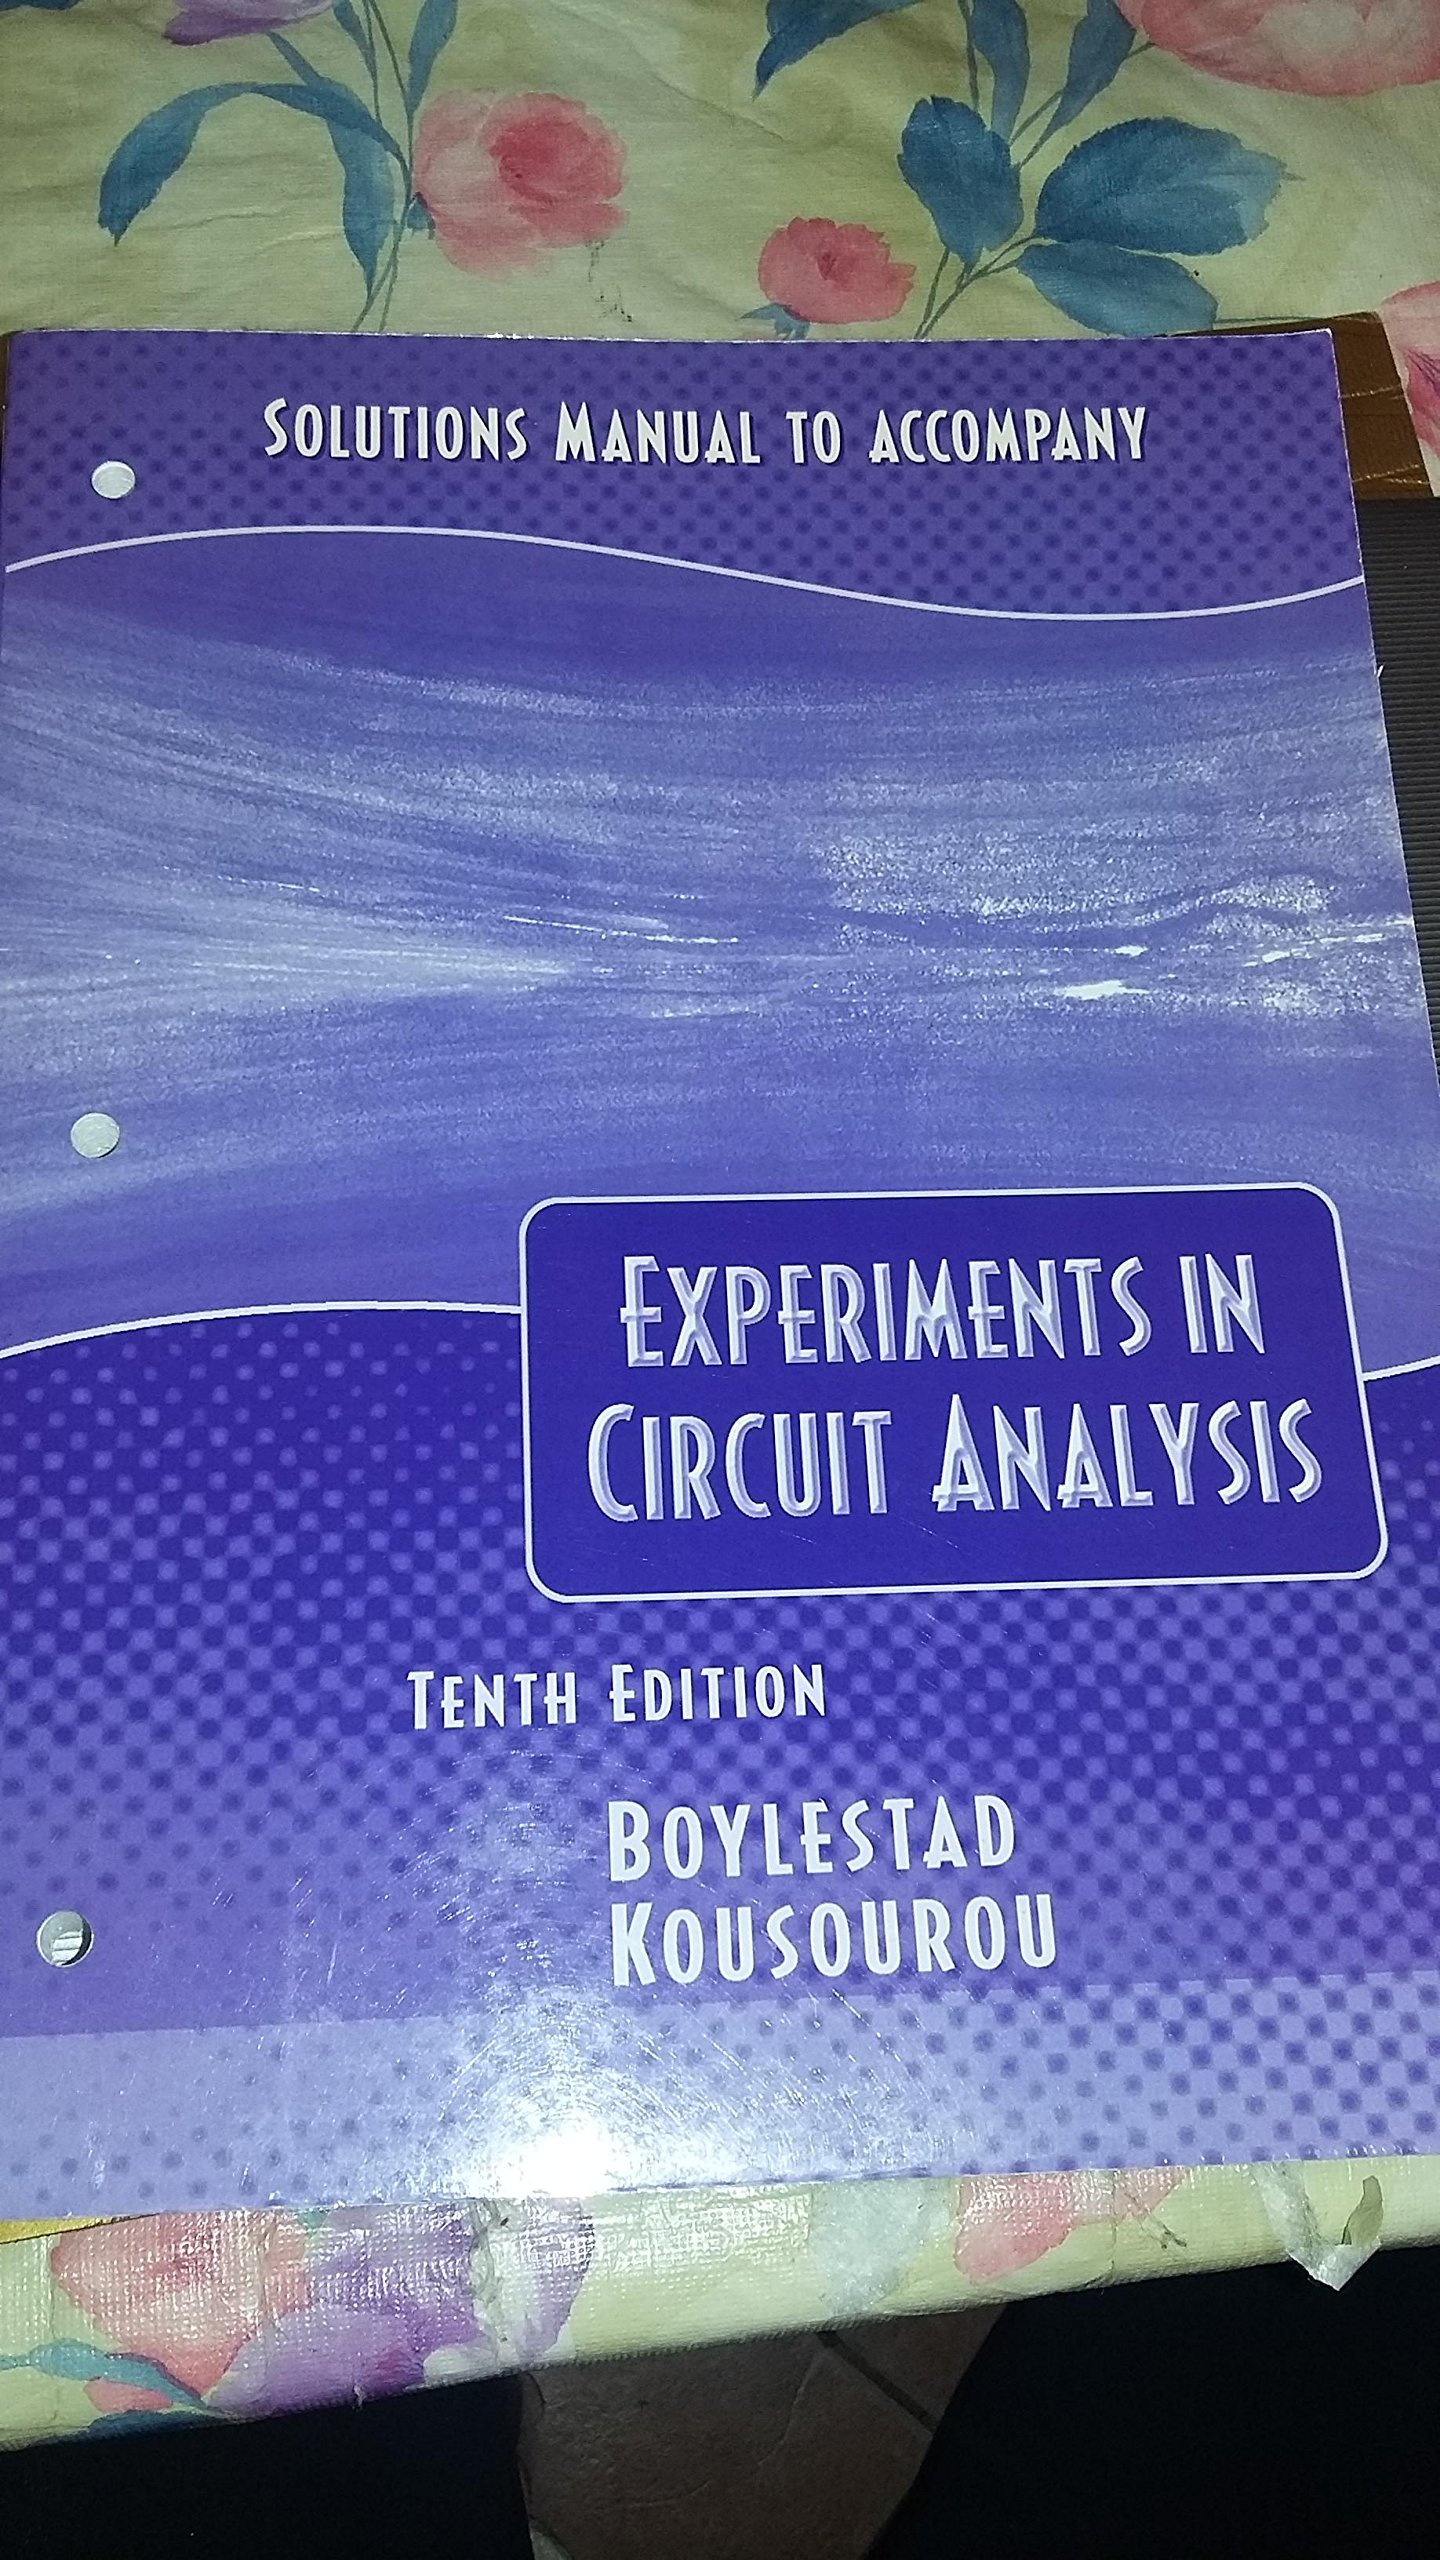 Solutions Manual to Accompany Experiments in Circuit Analysis Introductory  Circuit Analysis: Robert L. Boylestad: 9780130486622: Amazon.com: Books